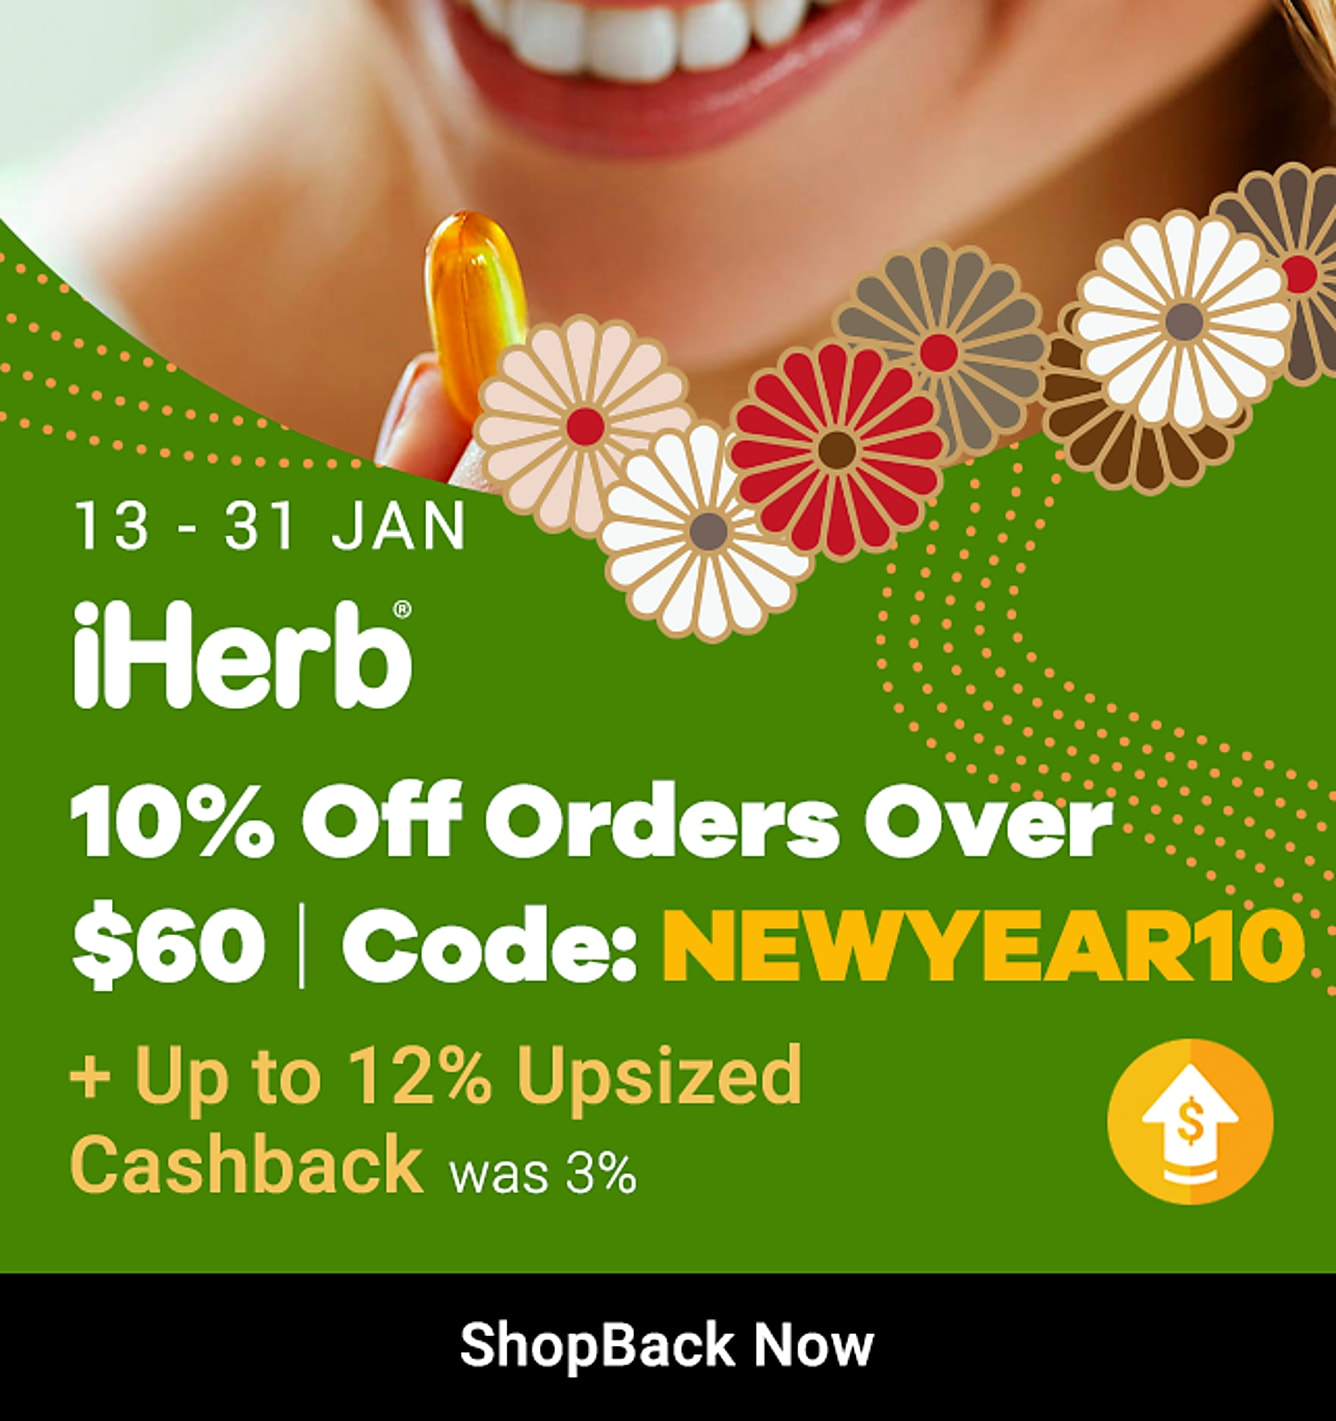 iherb 10% off orders over $60 + 12% upsized cashback